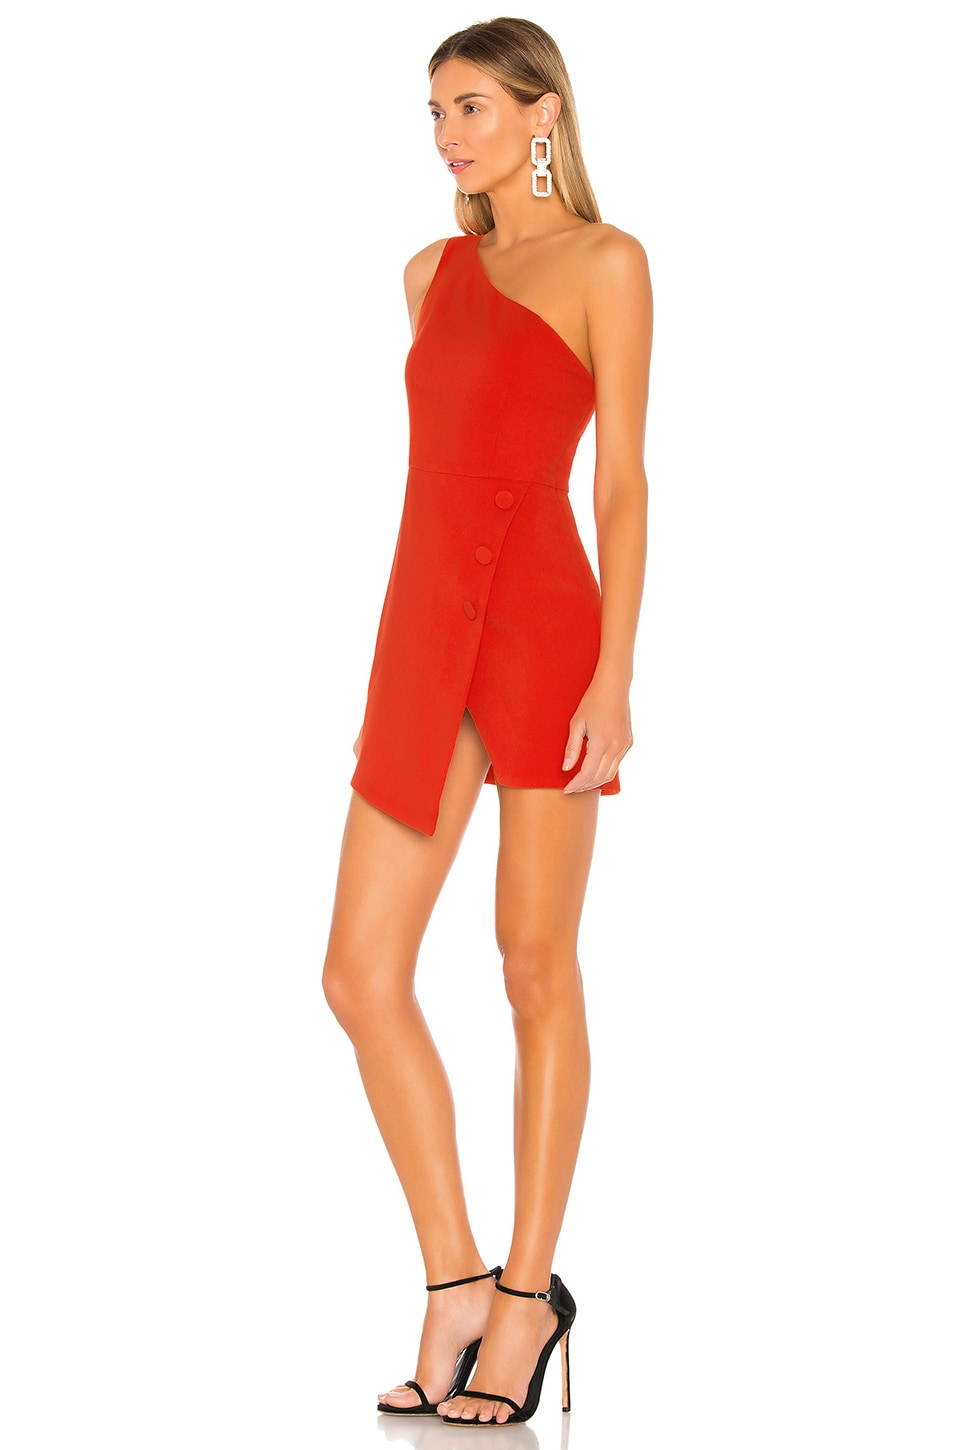 Tere Mini Dress, view 3, click to view large image.